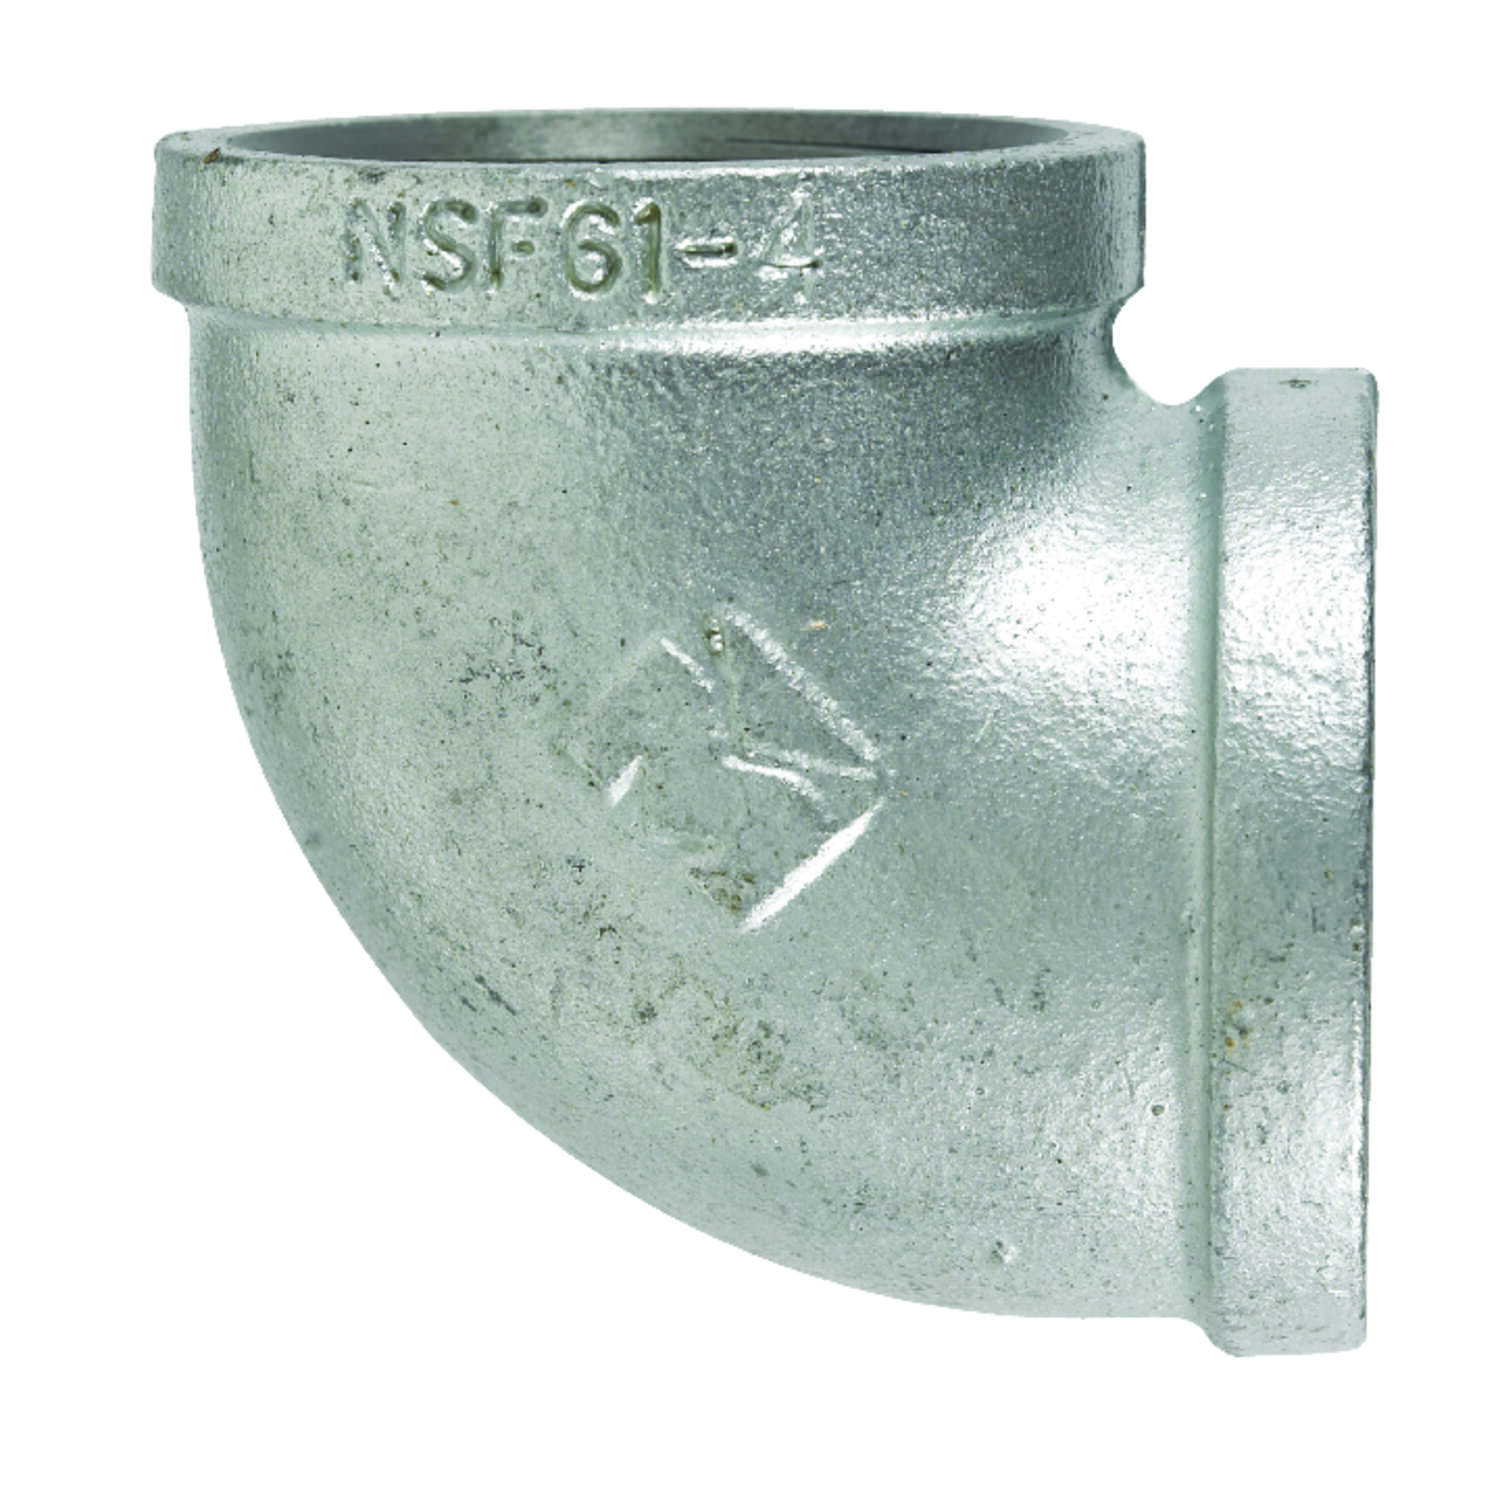 BK Products  1/2 in. FPT   x 1/2 in. Dia. FPT  Galvanized  Malleable Iron  Elbow